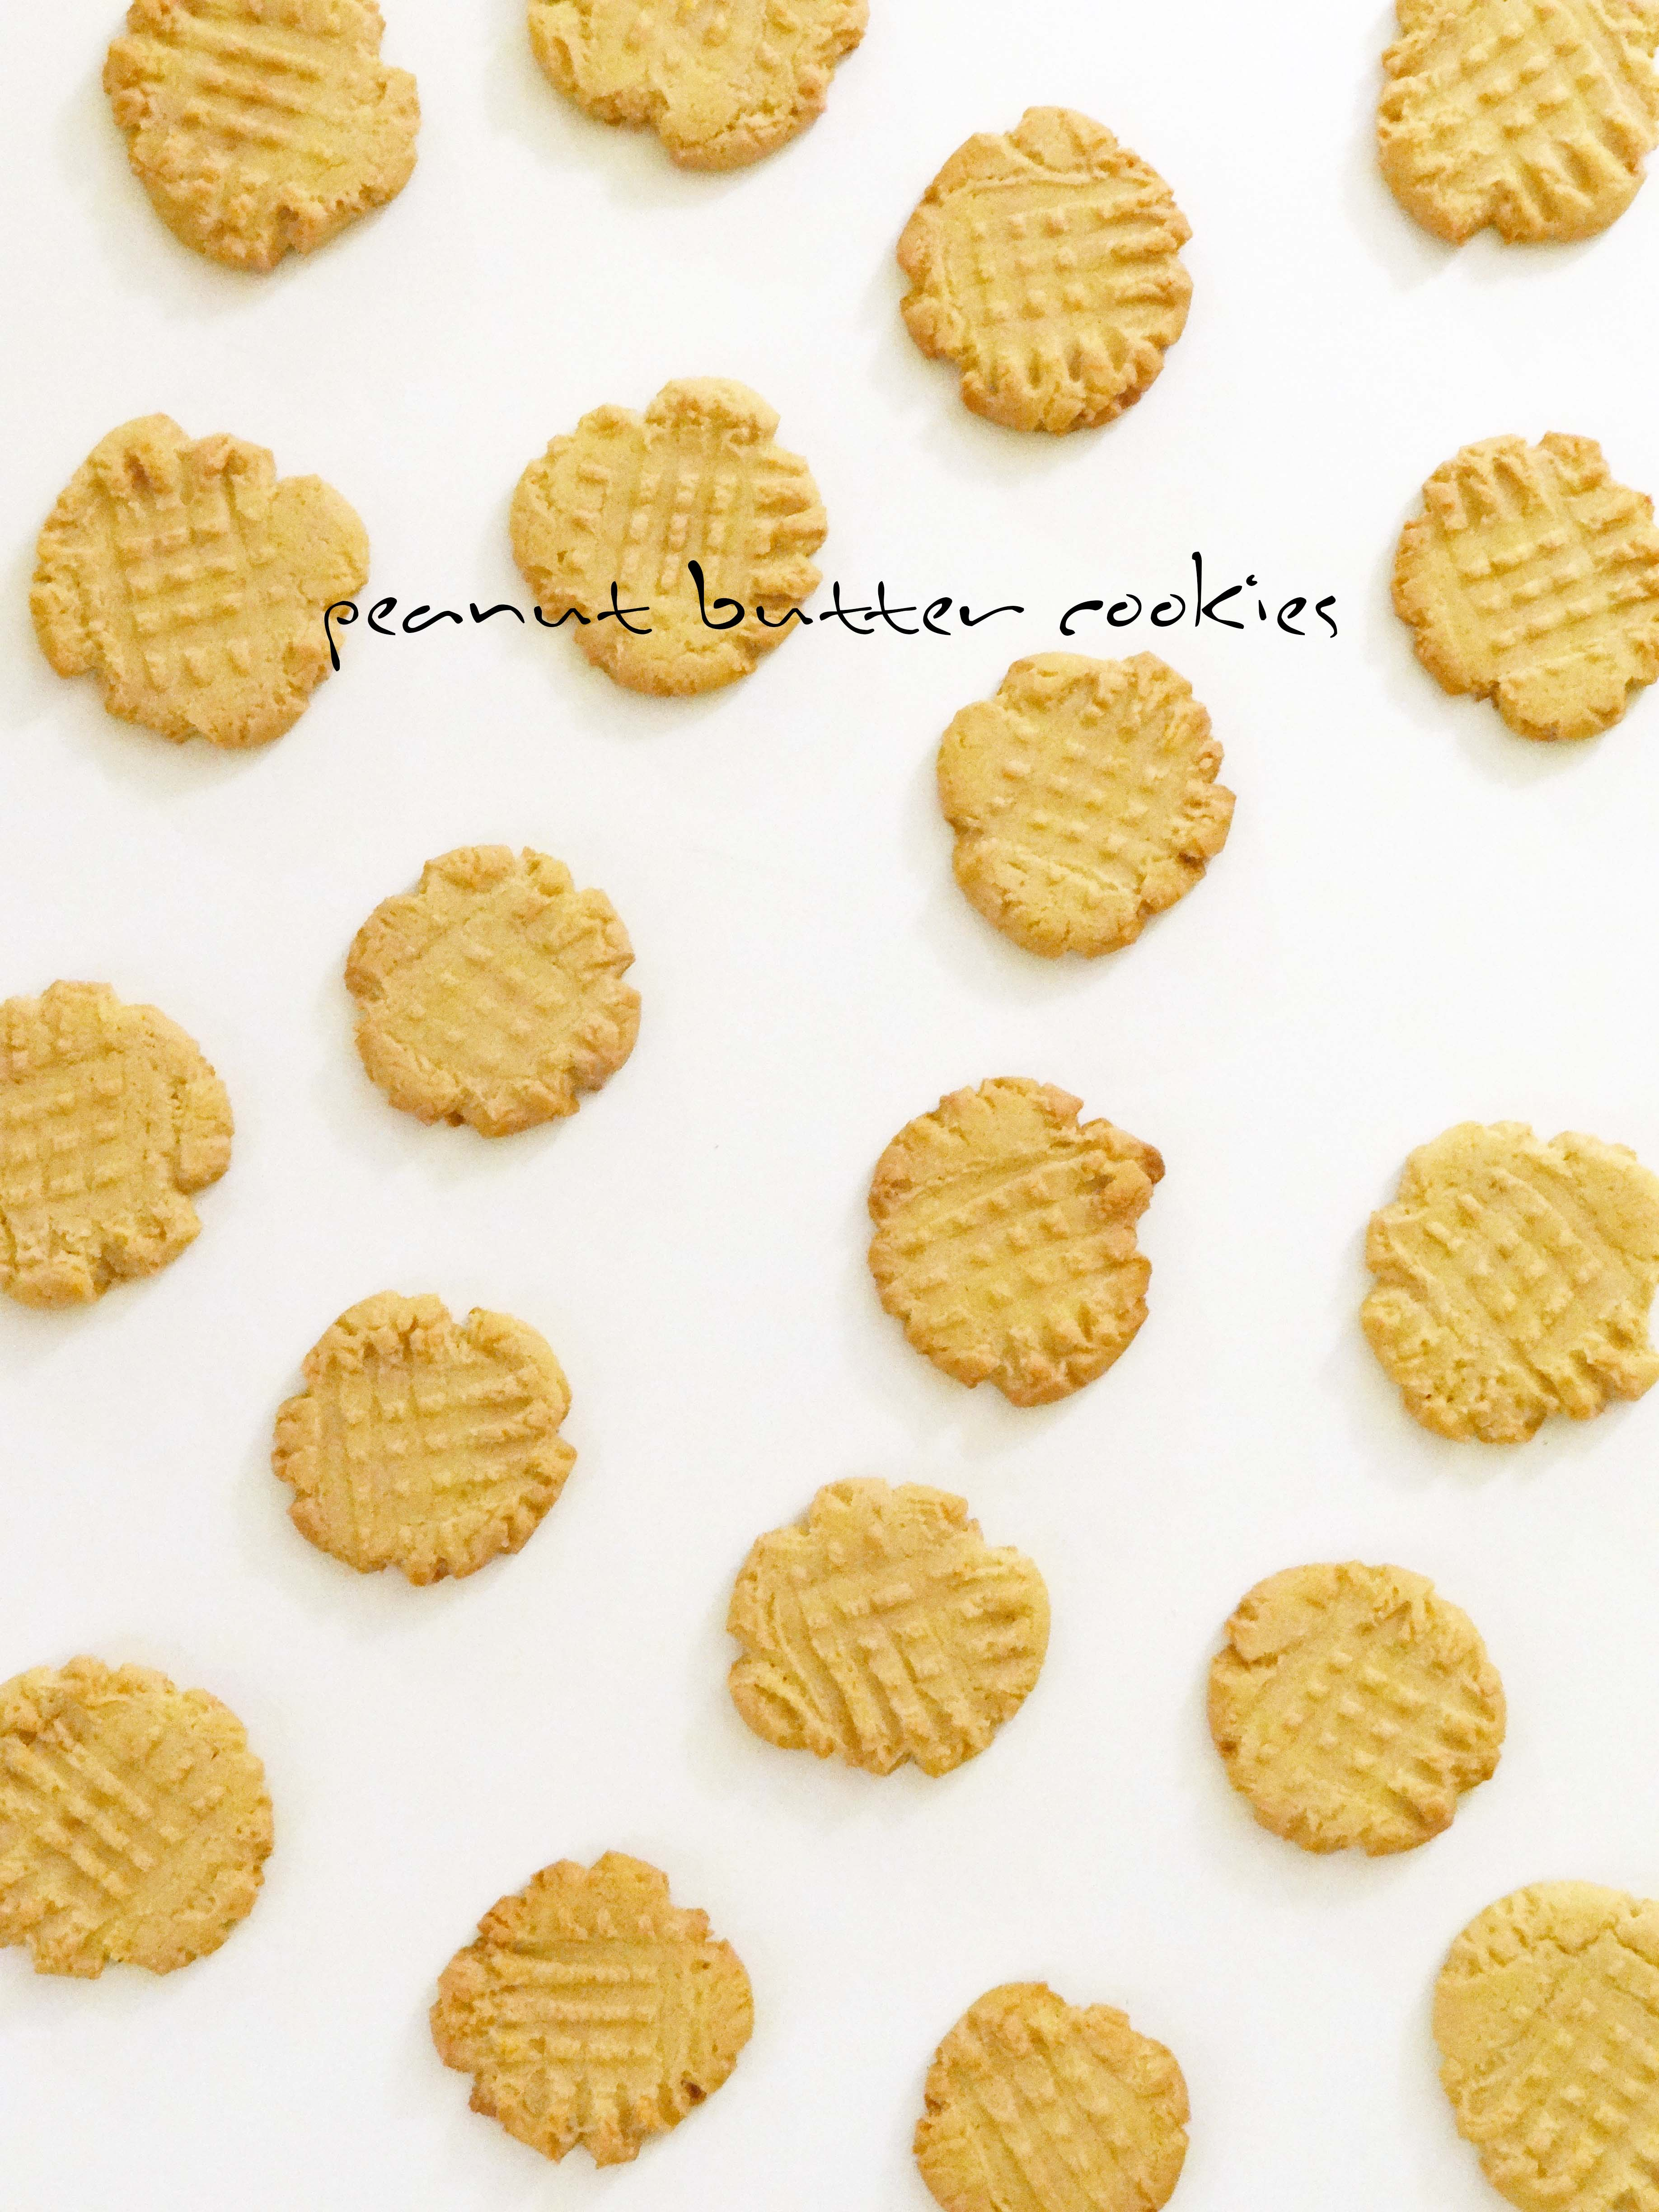 Peanut Butter Cookies, Baking, Kitchen Aid Mixer, Cookies, Recipes, Dessert, Lifestyle Blogger, Toronto Lifestyle Blogs,